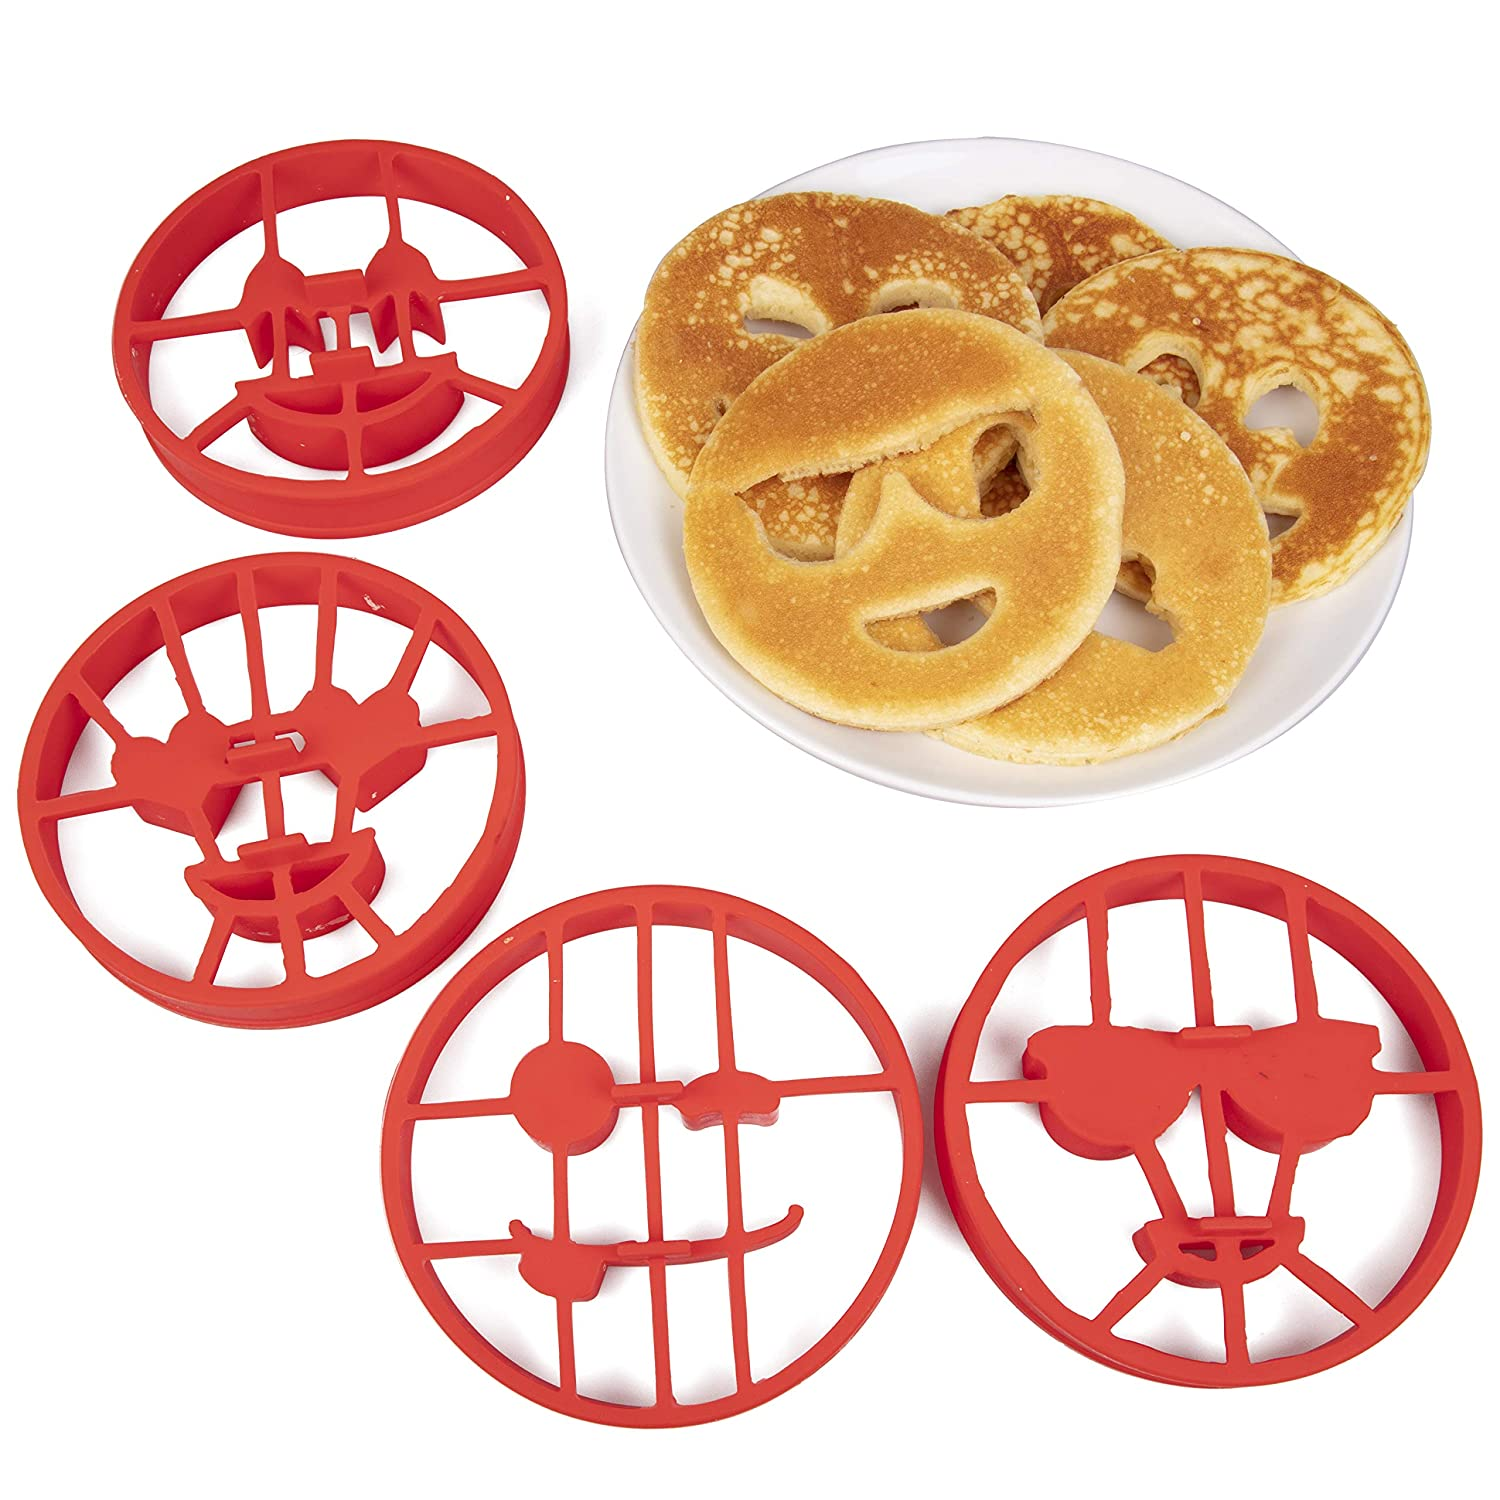 Emoji Pancake Molds and Egg Rings (4 Pack) for Kids AND Adults - Reusable Silicone Smiley Face Maker Doubles as Cookie Maker Set- FDA Approved, BPA Free, Food Safe, Heat Resistant Silicone Good Cooking GCO-EPA-144